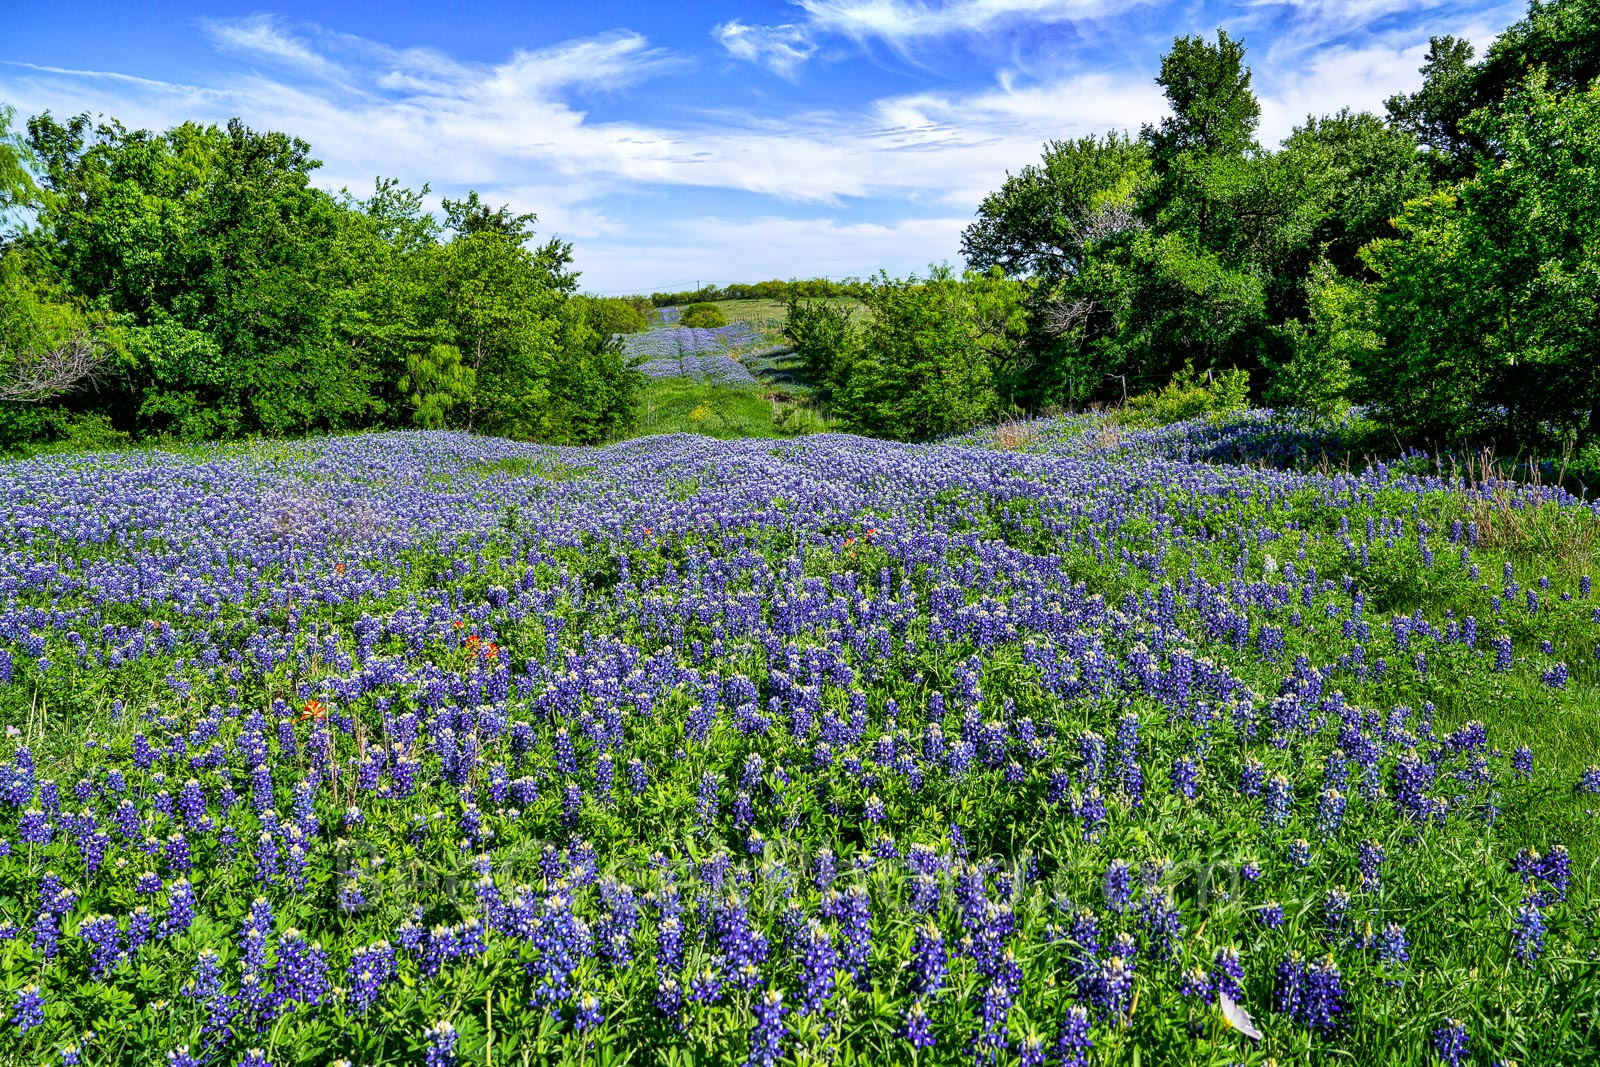 Texas bluebonnets, bluebonnet, hill, beyond, blue sky, clouds, nice field of bluebonnets, wildflowers, , photo